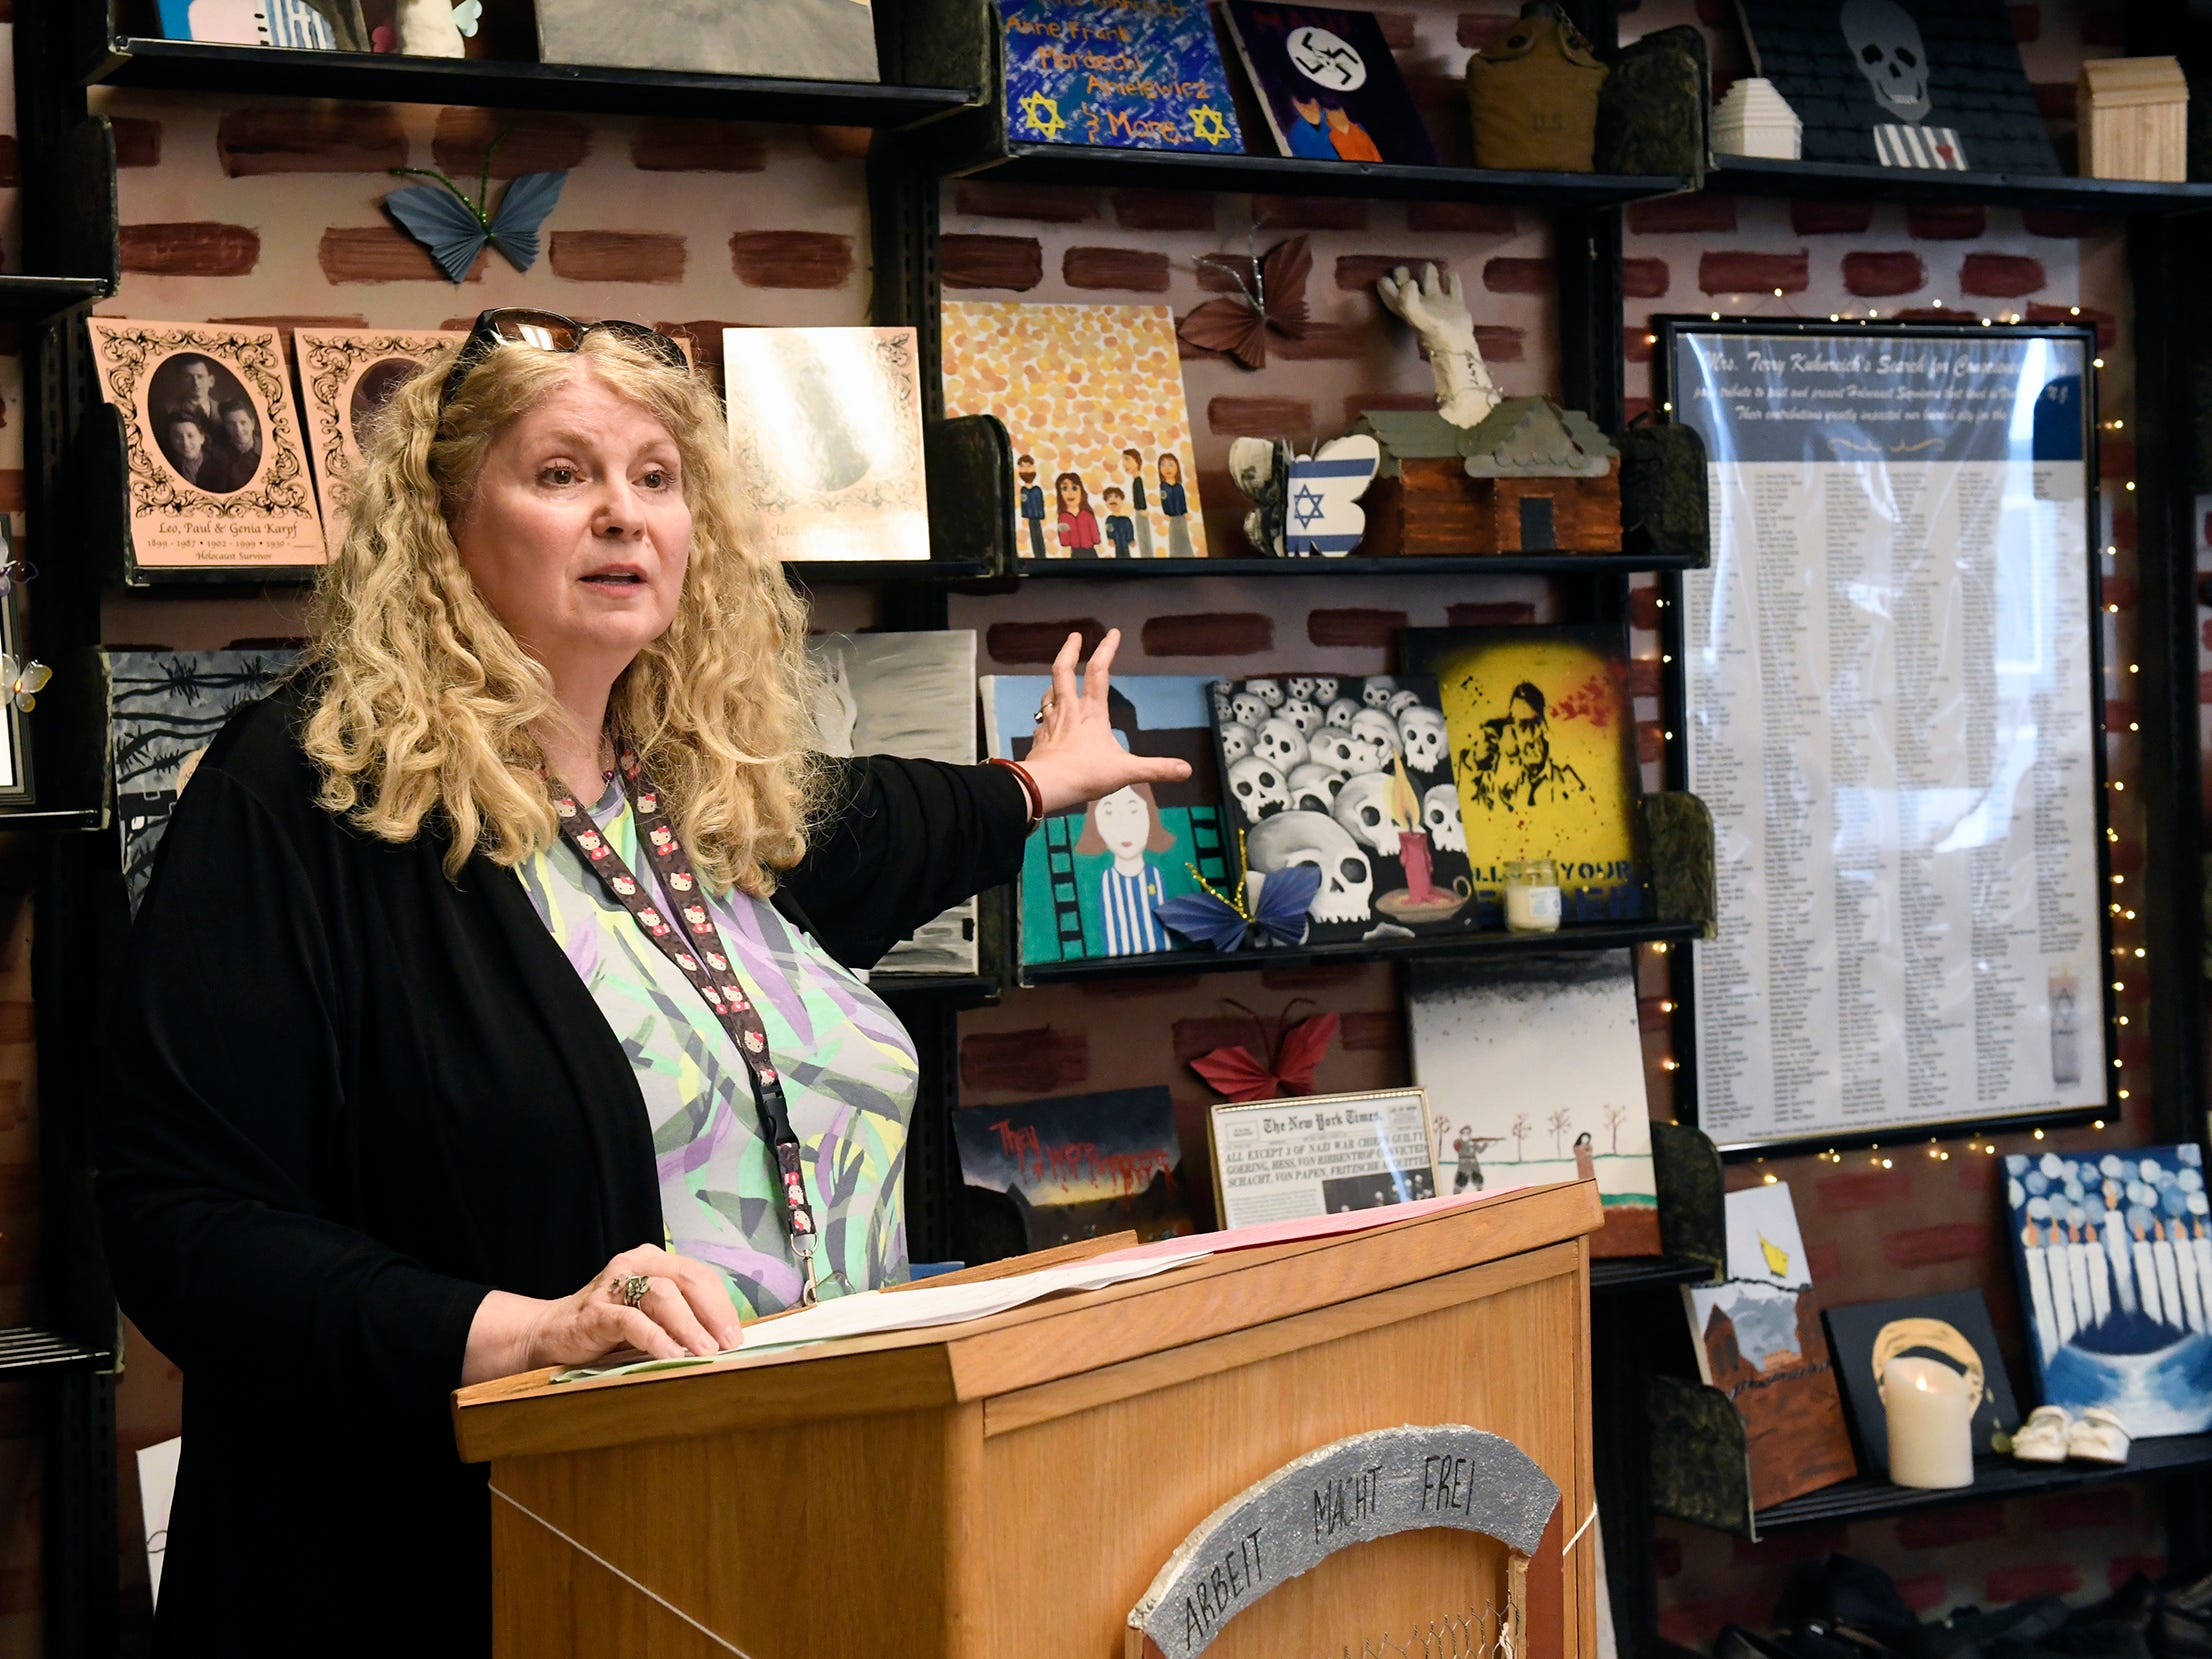 Mrs. Terry Kuhnreich, VHS Search for Conscience Teacher, speaks during a dedication at Vineland High School for a permanent exhibit to honor Vineland Holocaust survivors in the school library on Wednesday, May 8, 2019.